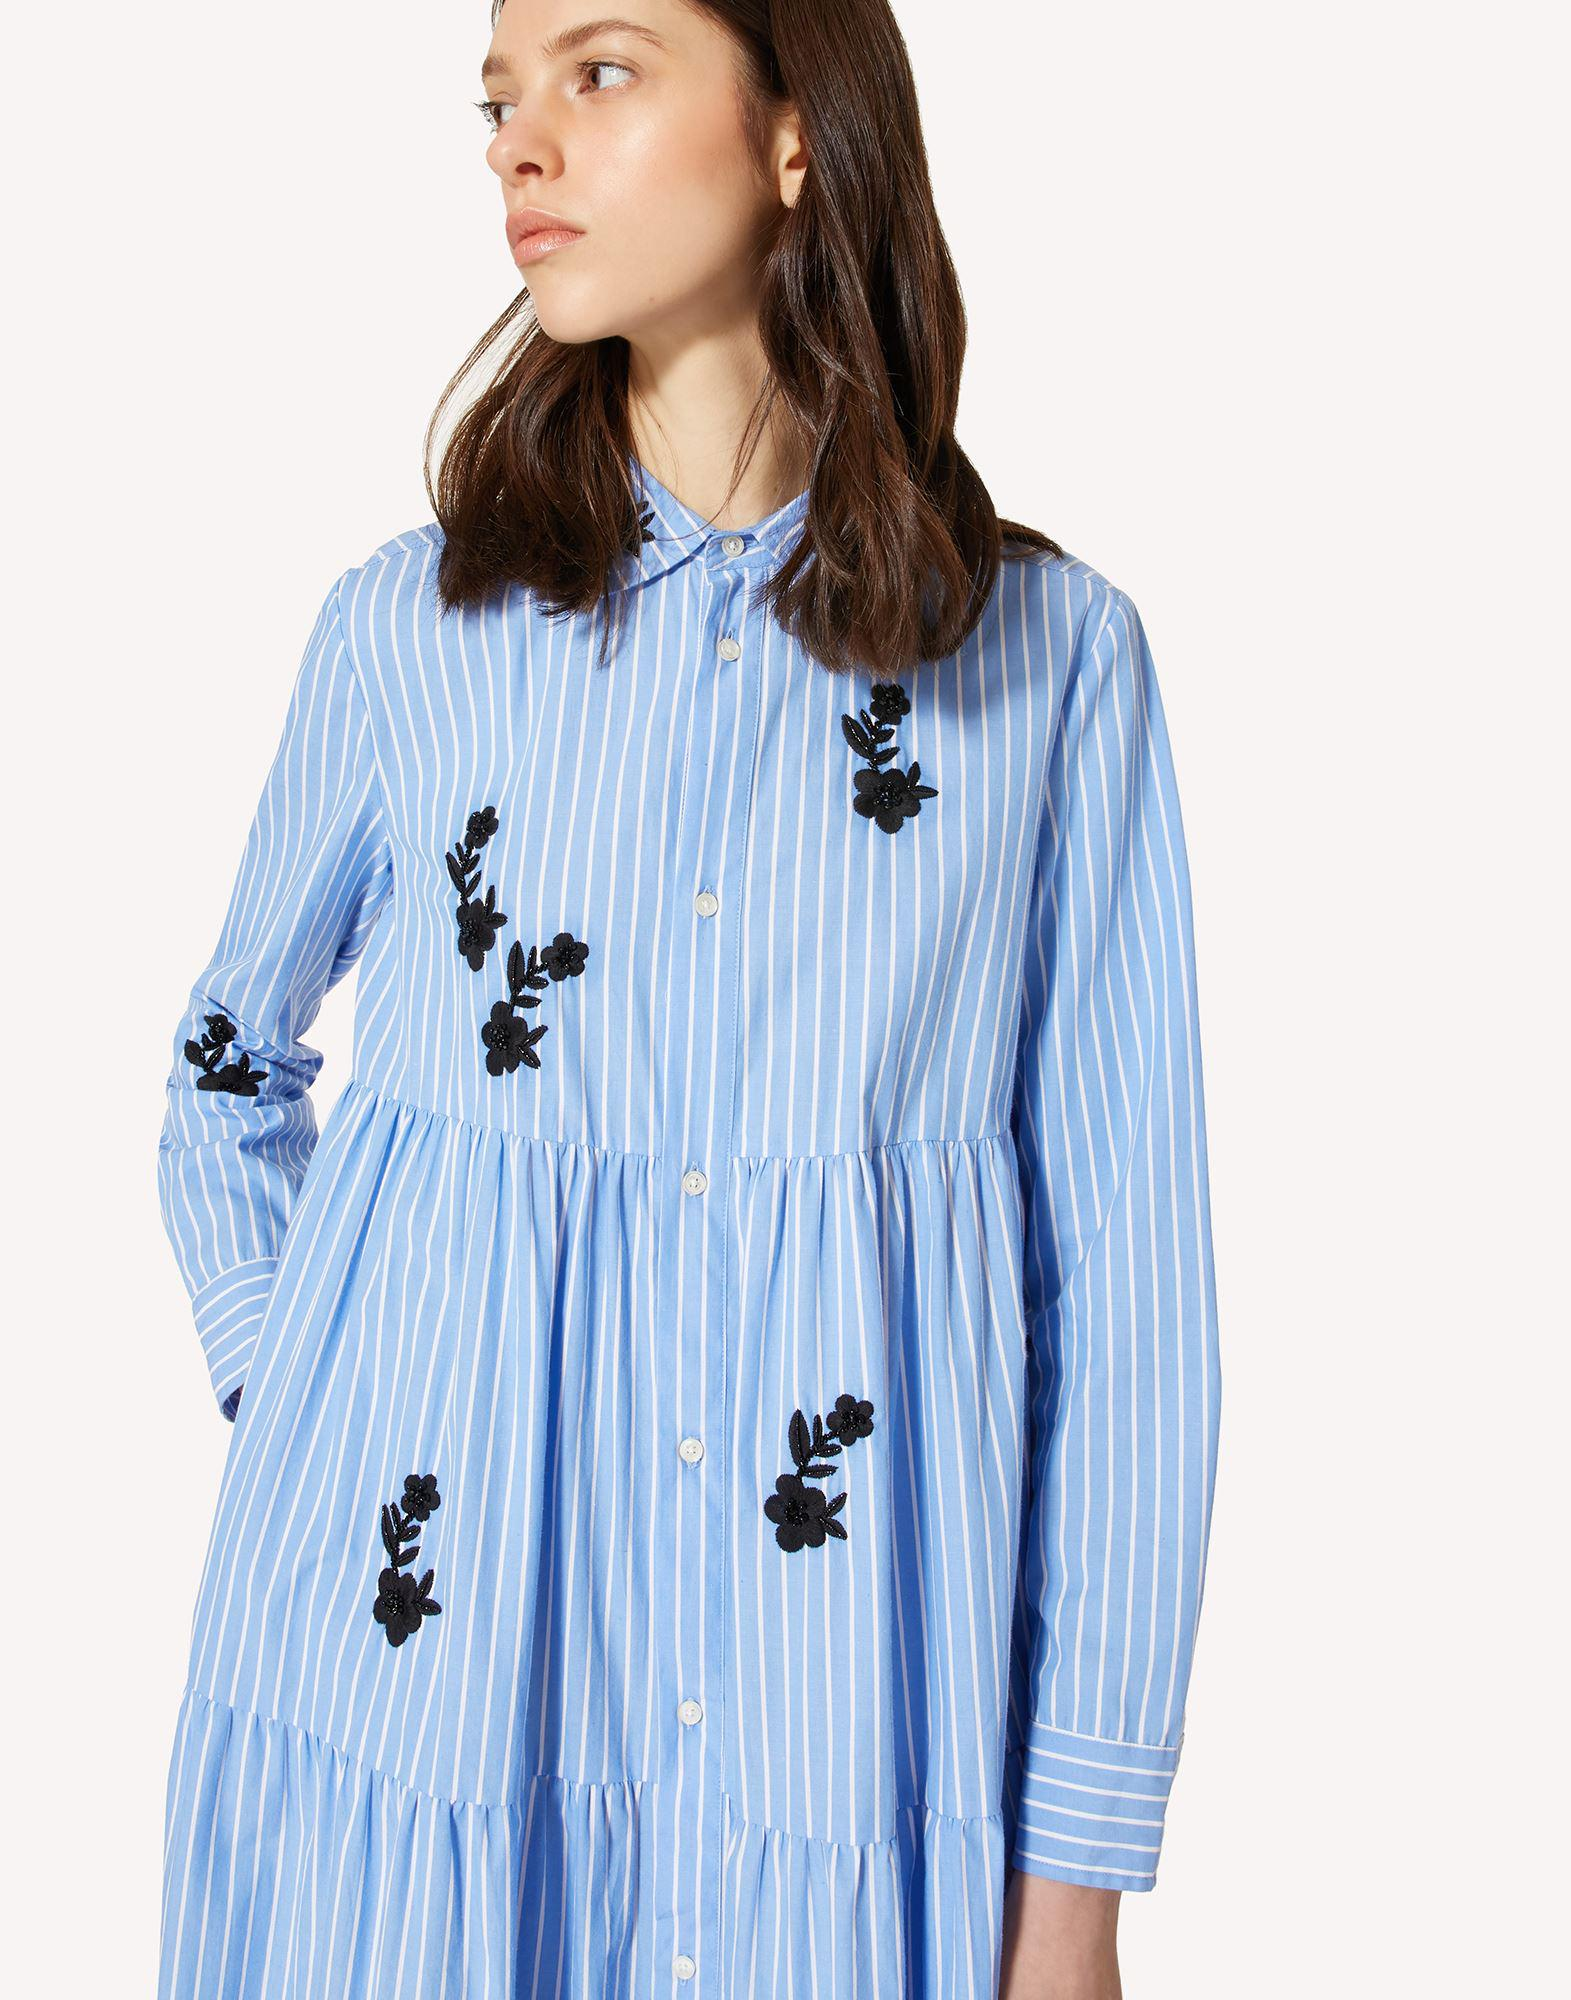 STRIPED COTTON DRESS WITH FLORAL EMBROIDERY 3